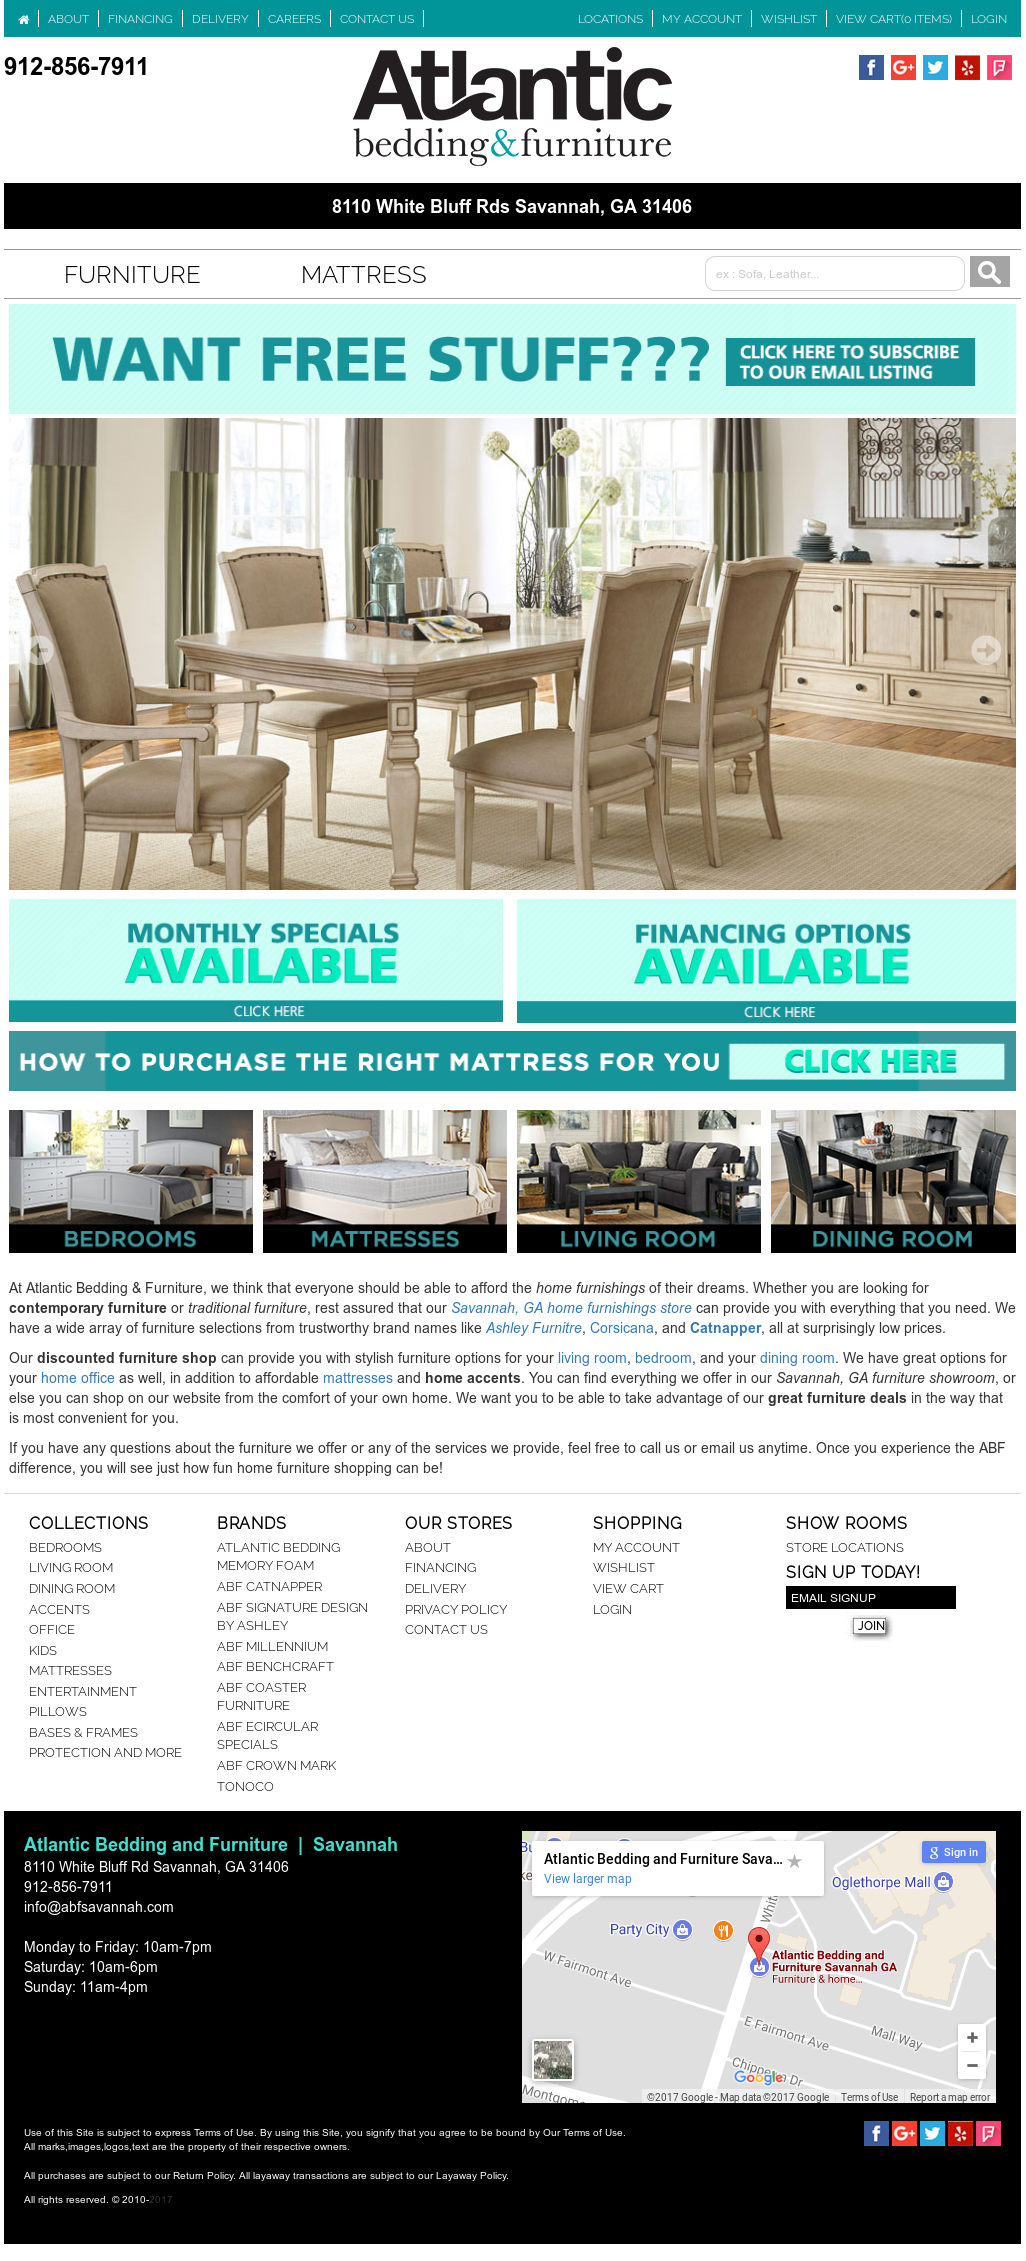 Ordinaire Atlantic Bedding And Furniture Savannah Competitors, Revenue And Employees    Owler Company Profile